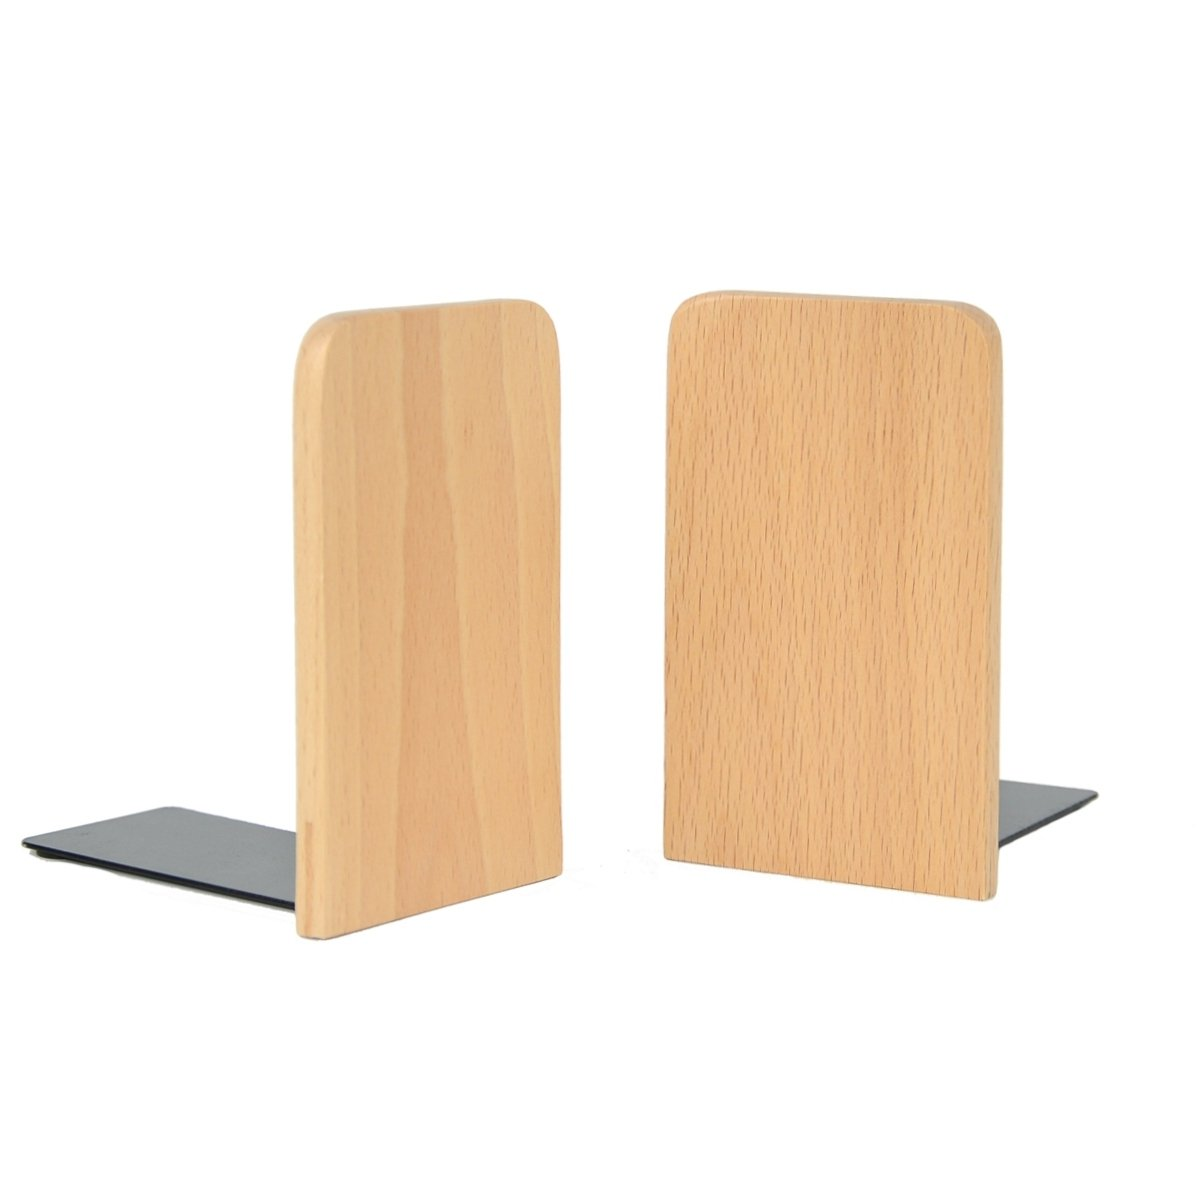 Musowood Bookend Set of 2 Natural Beech Wood Office Desktop Bookends, (Square) by Musowood